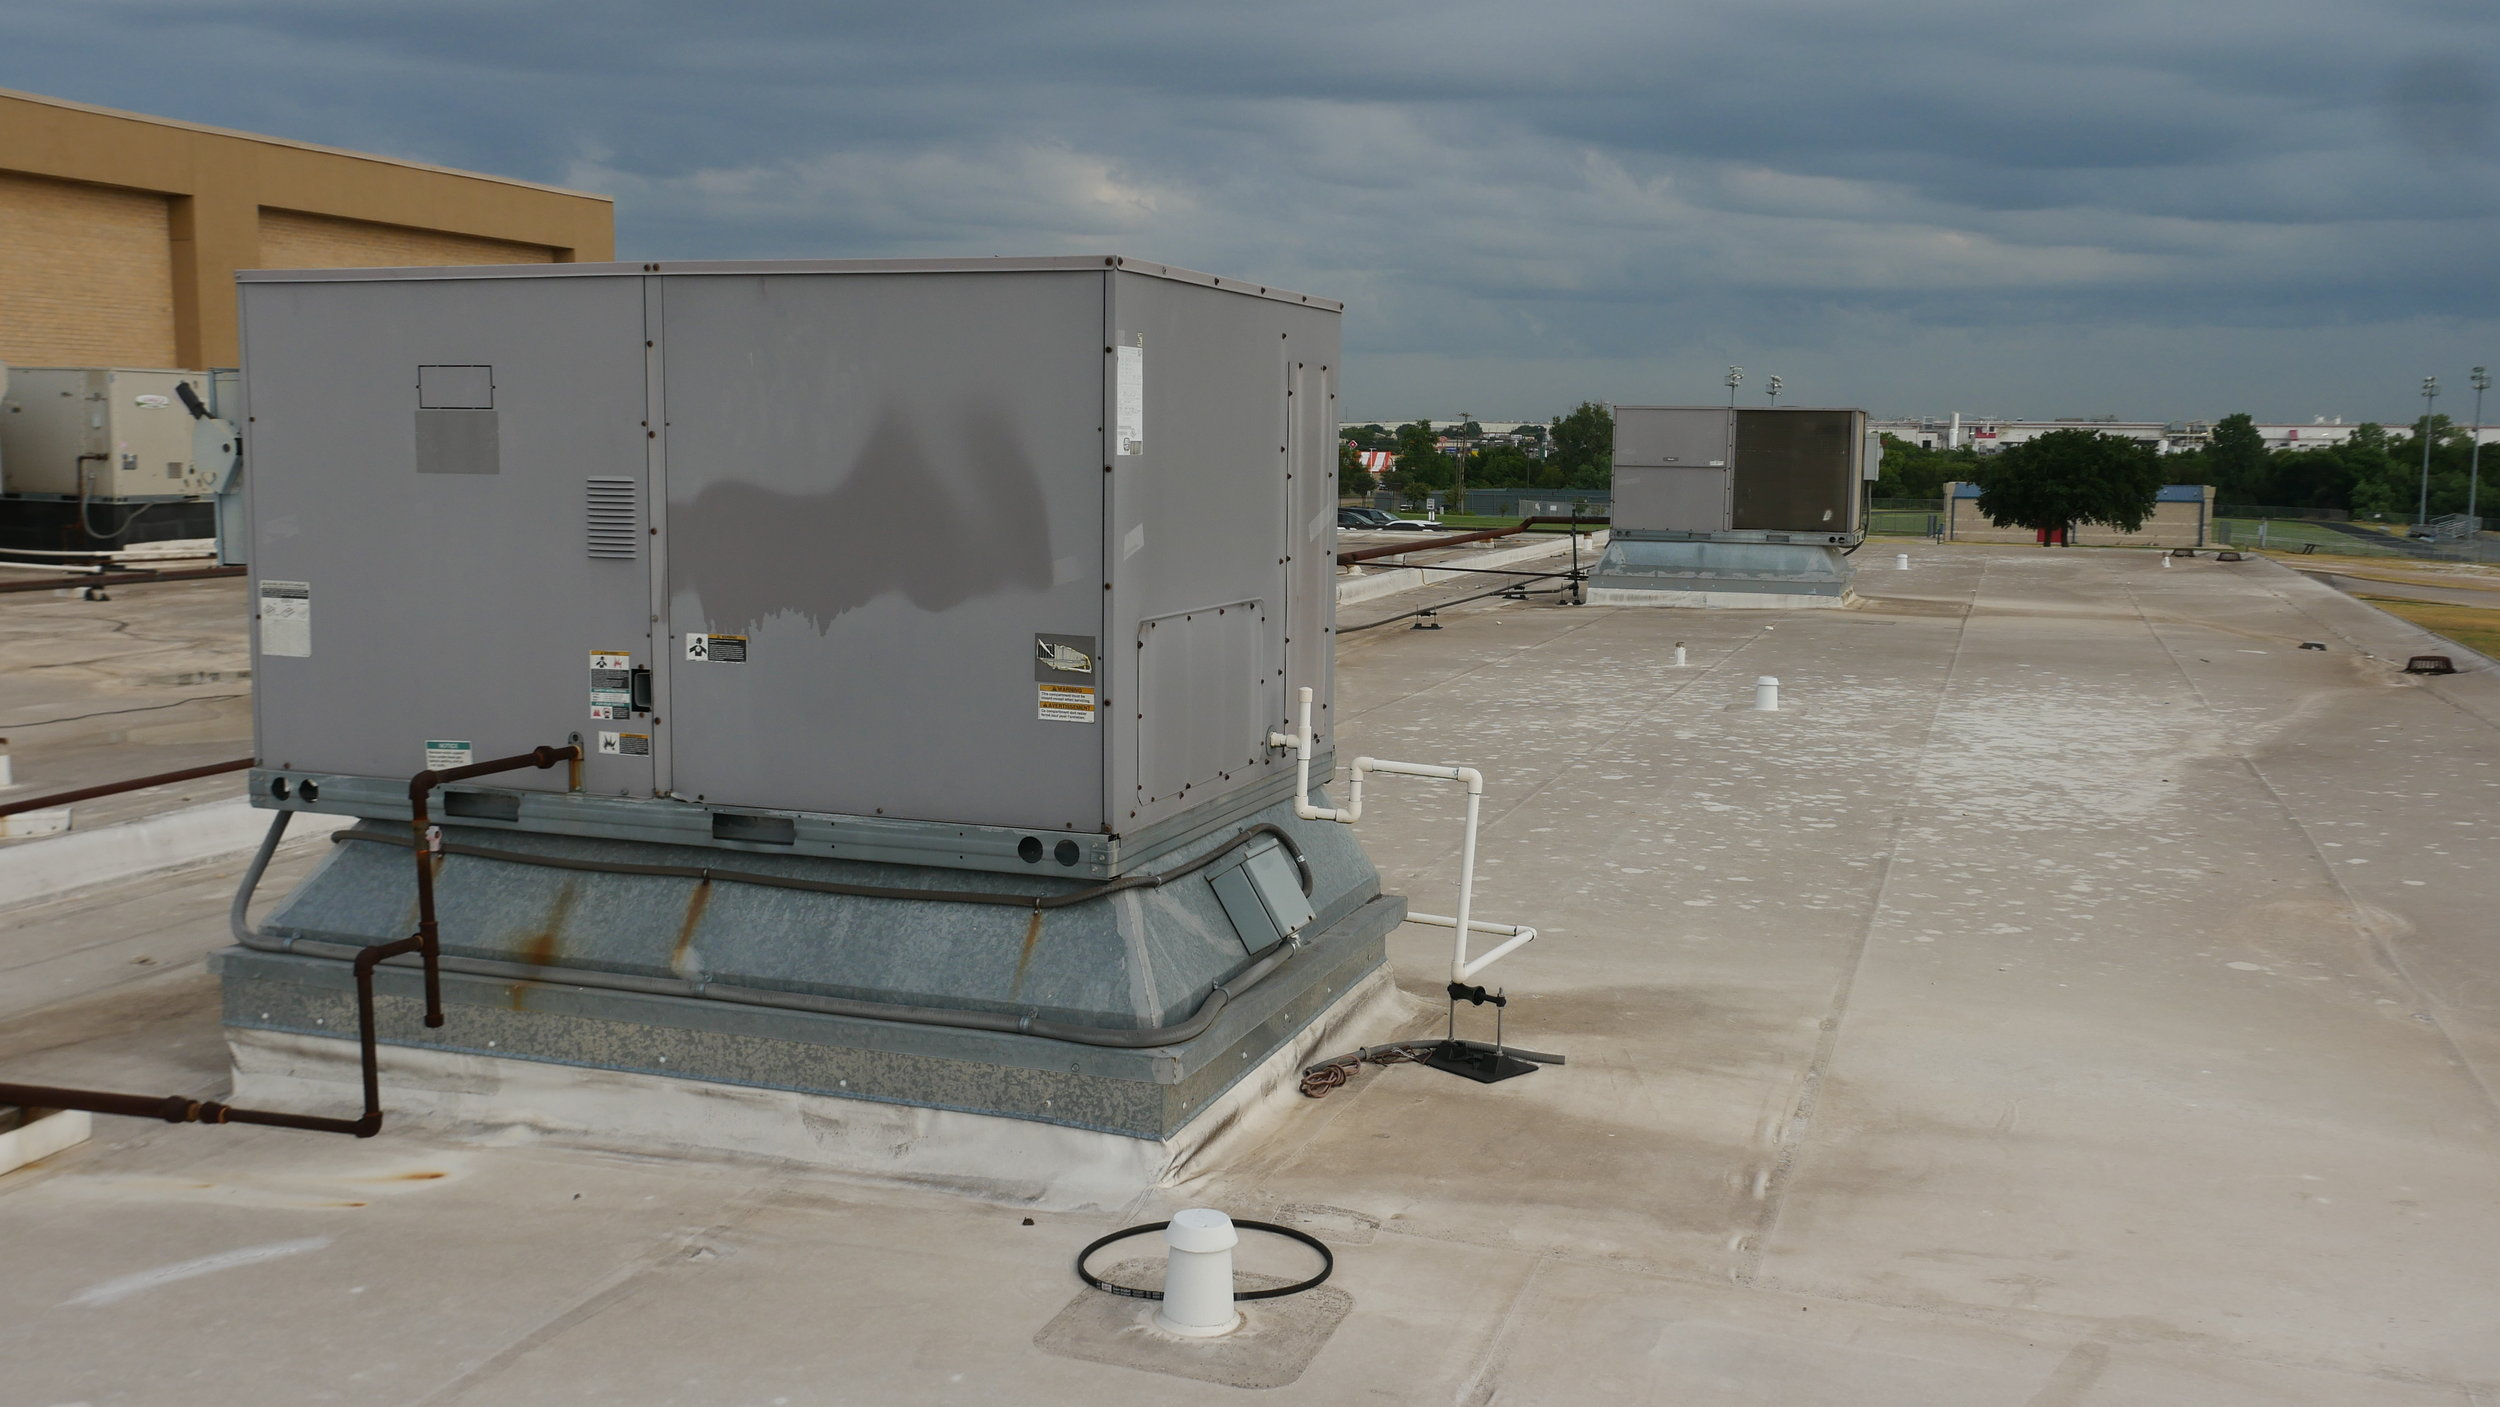 Five percent of the bond proposal would address aging HVAC systems and roofs.